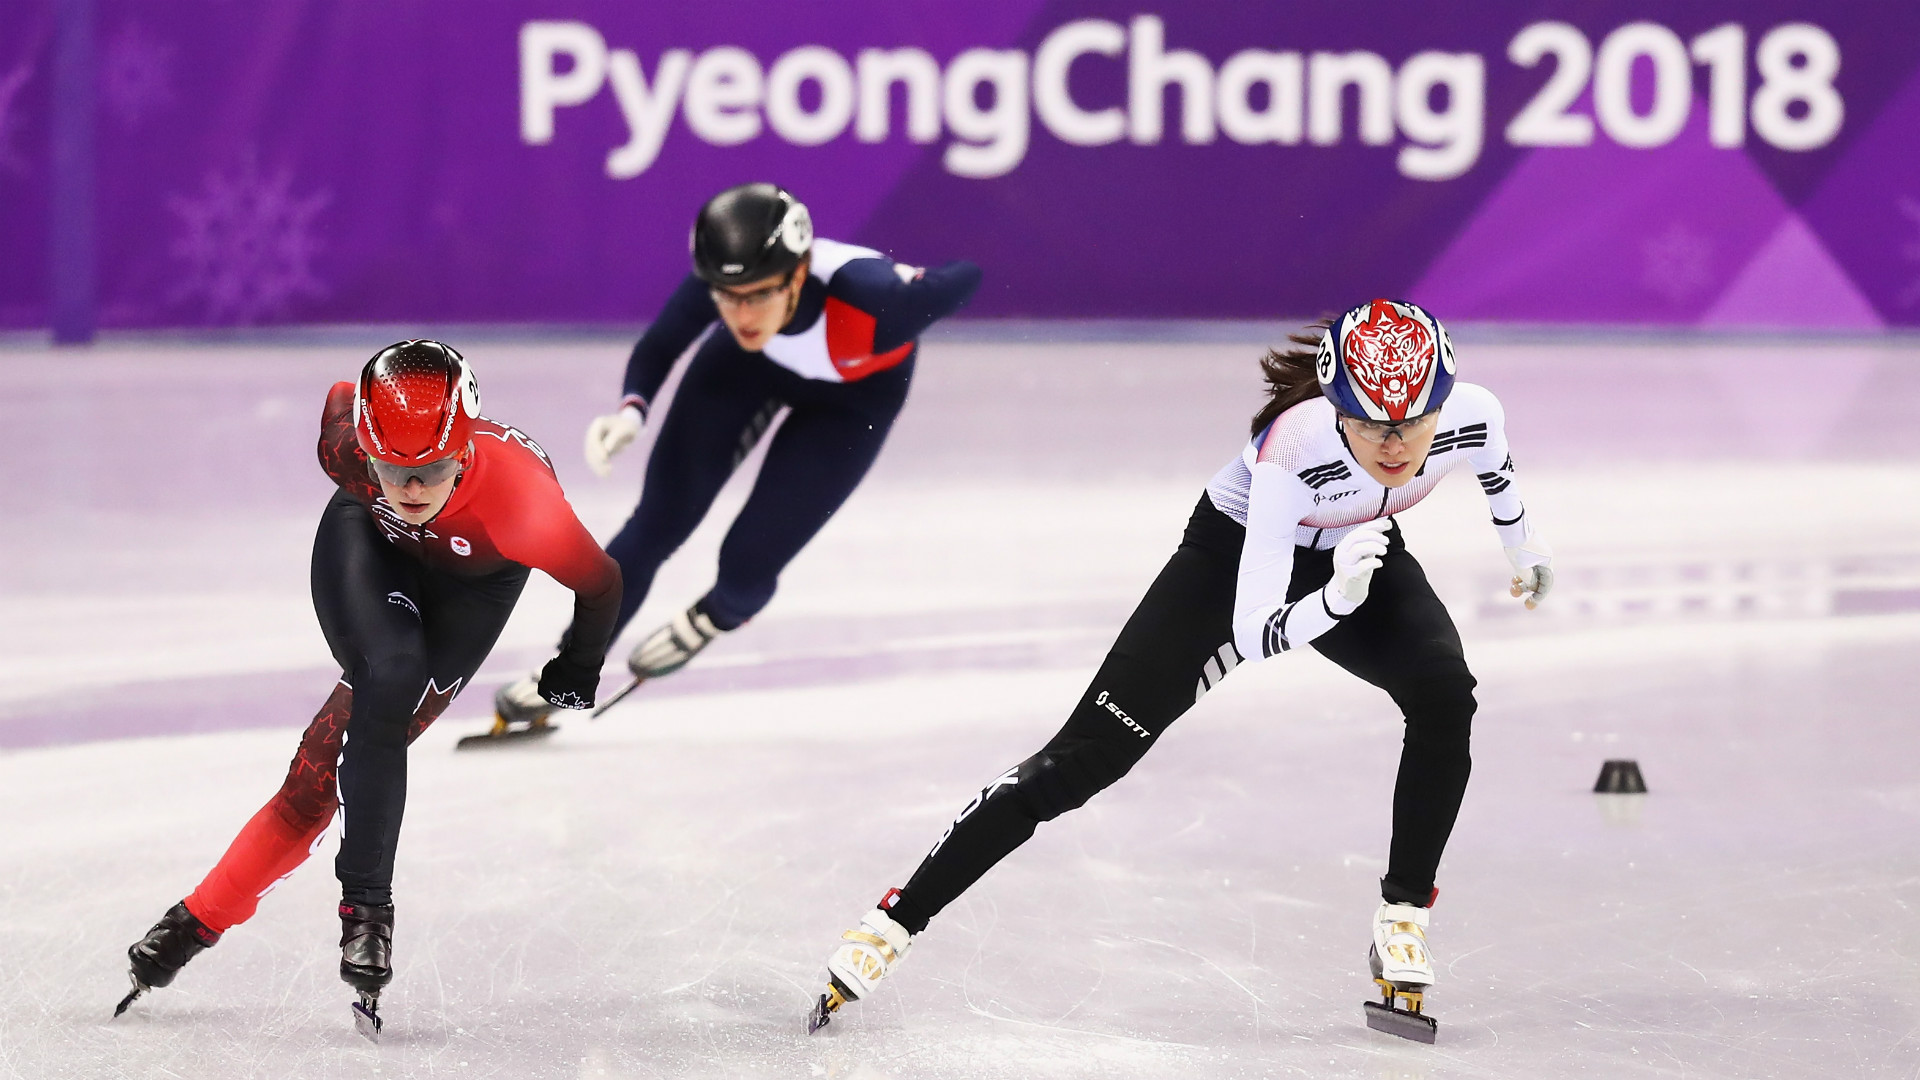 Winter Olympics 2018: Short track speedskater Boutin wins second bronze